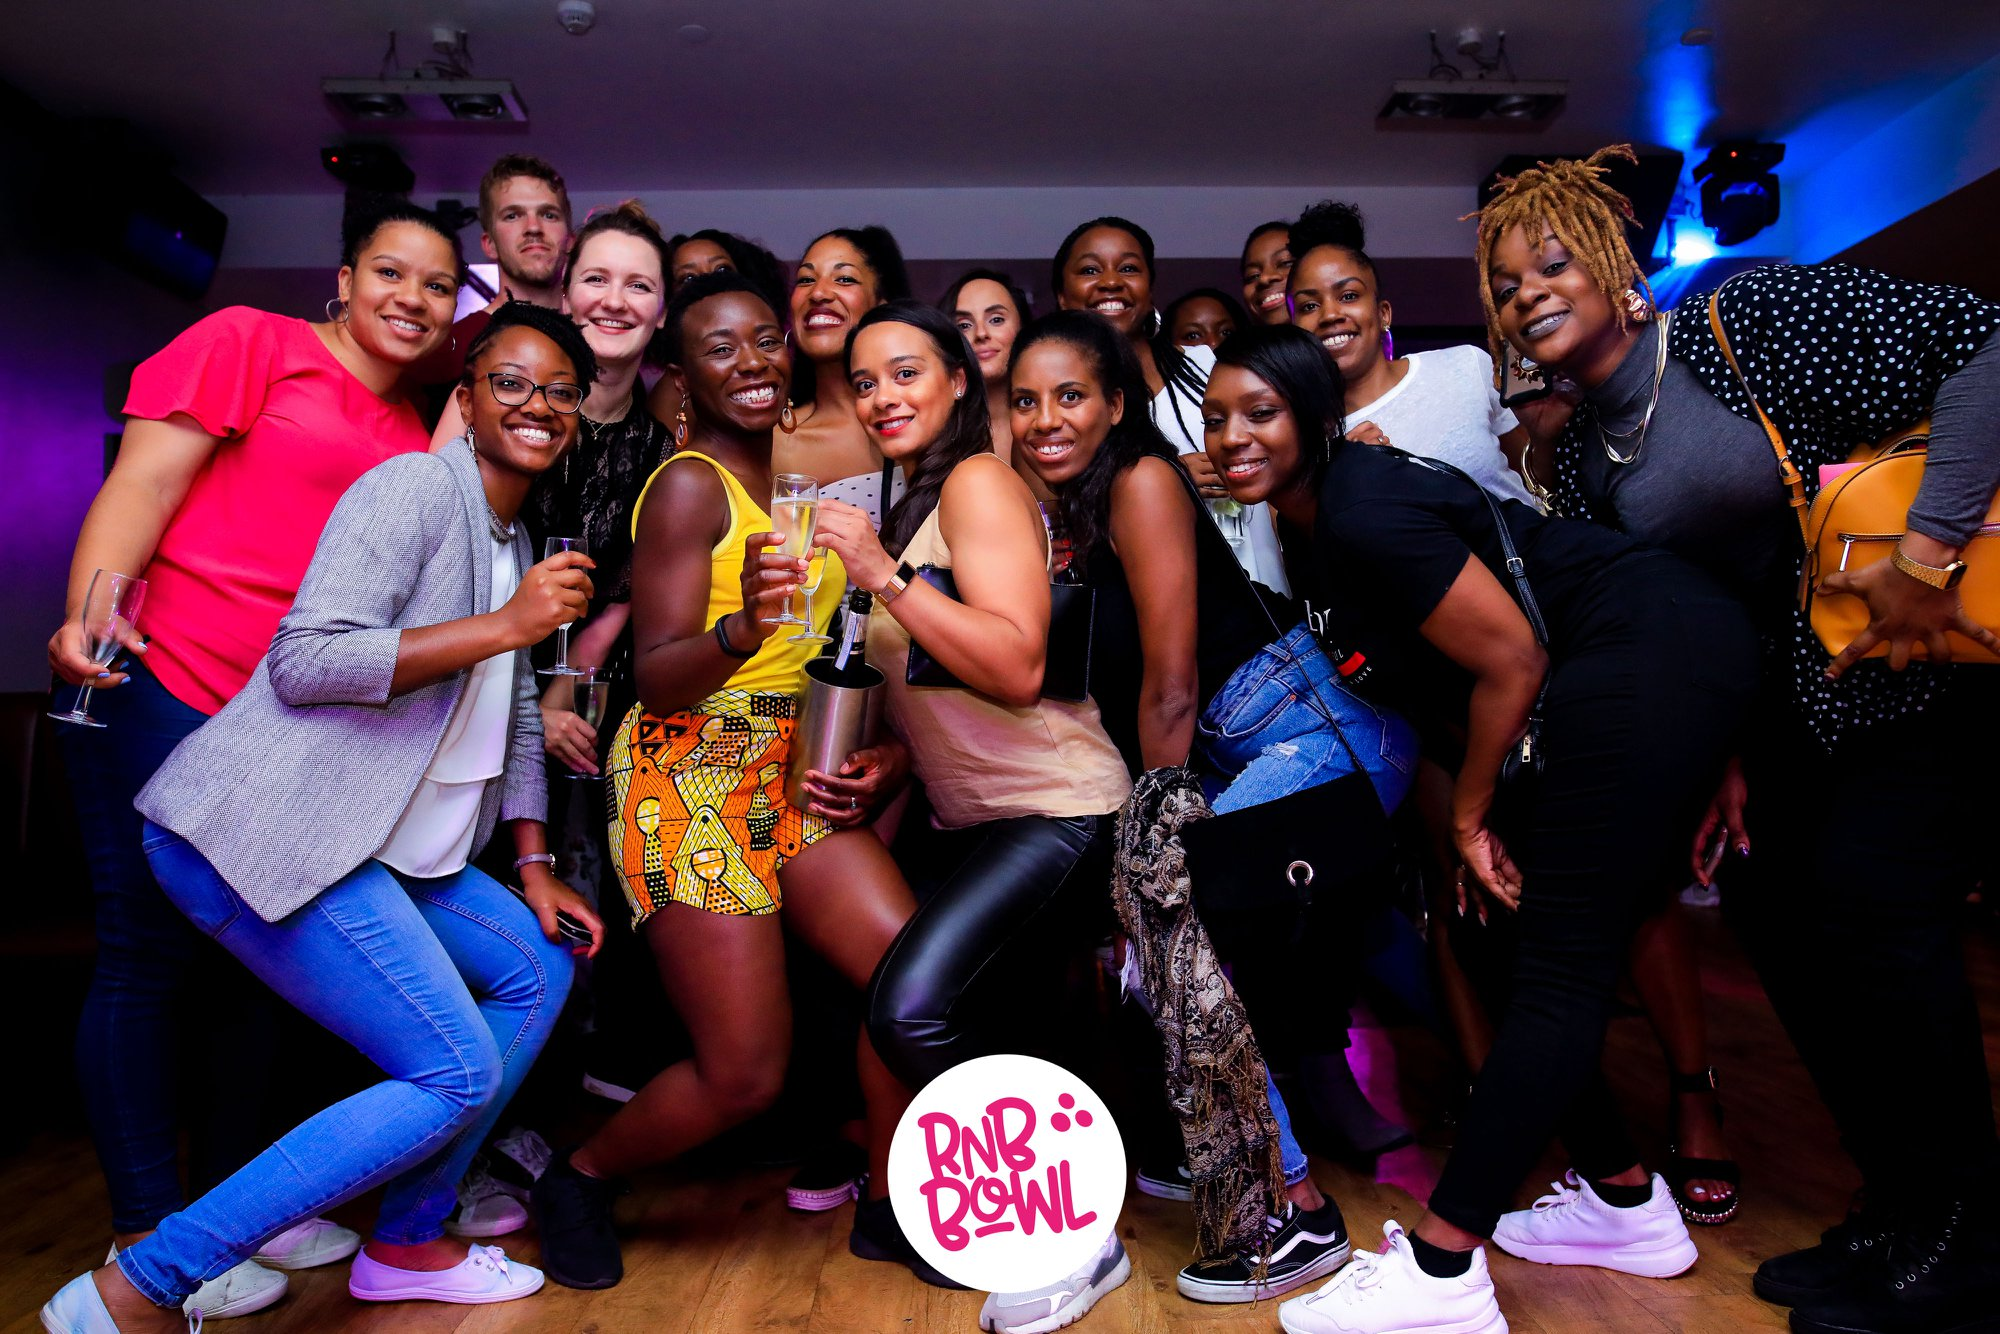 RnB Bowl - London's No.1 RnB Party